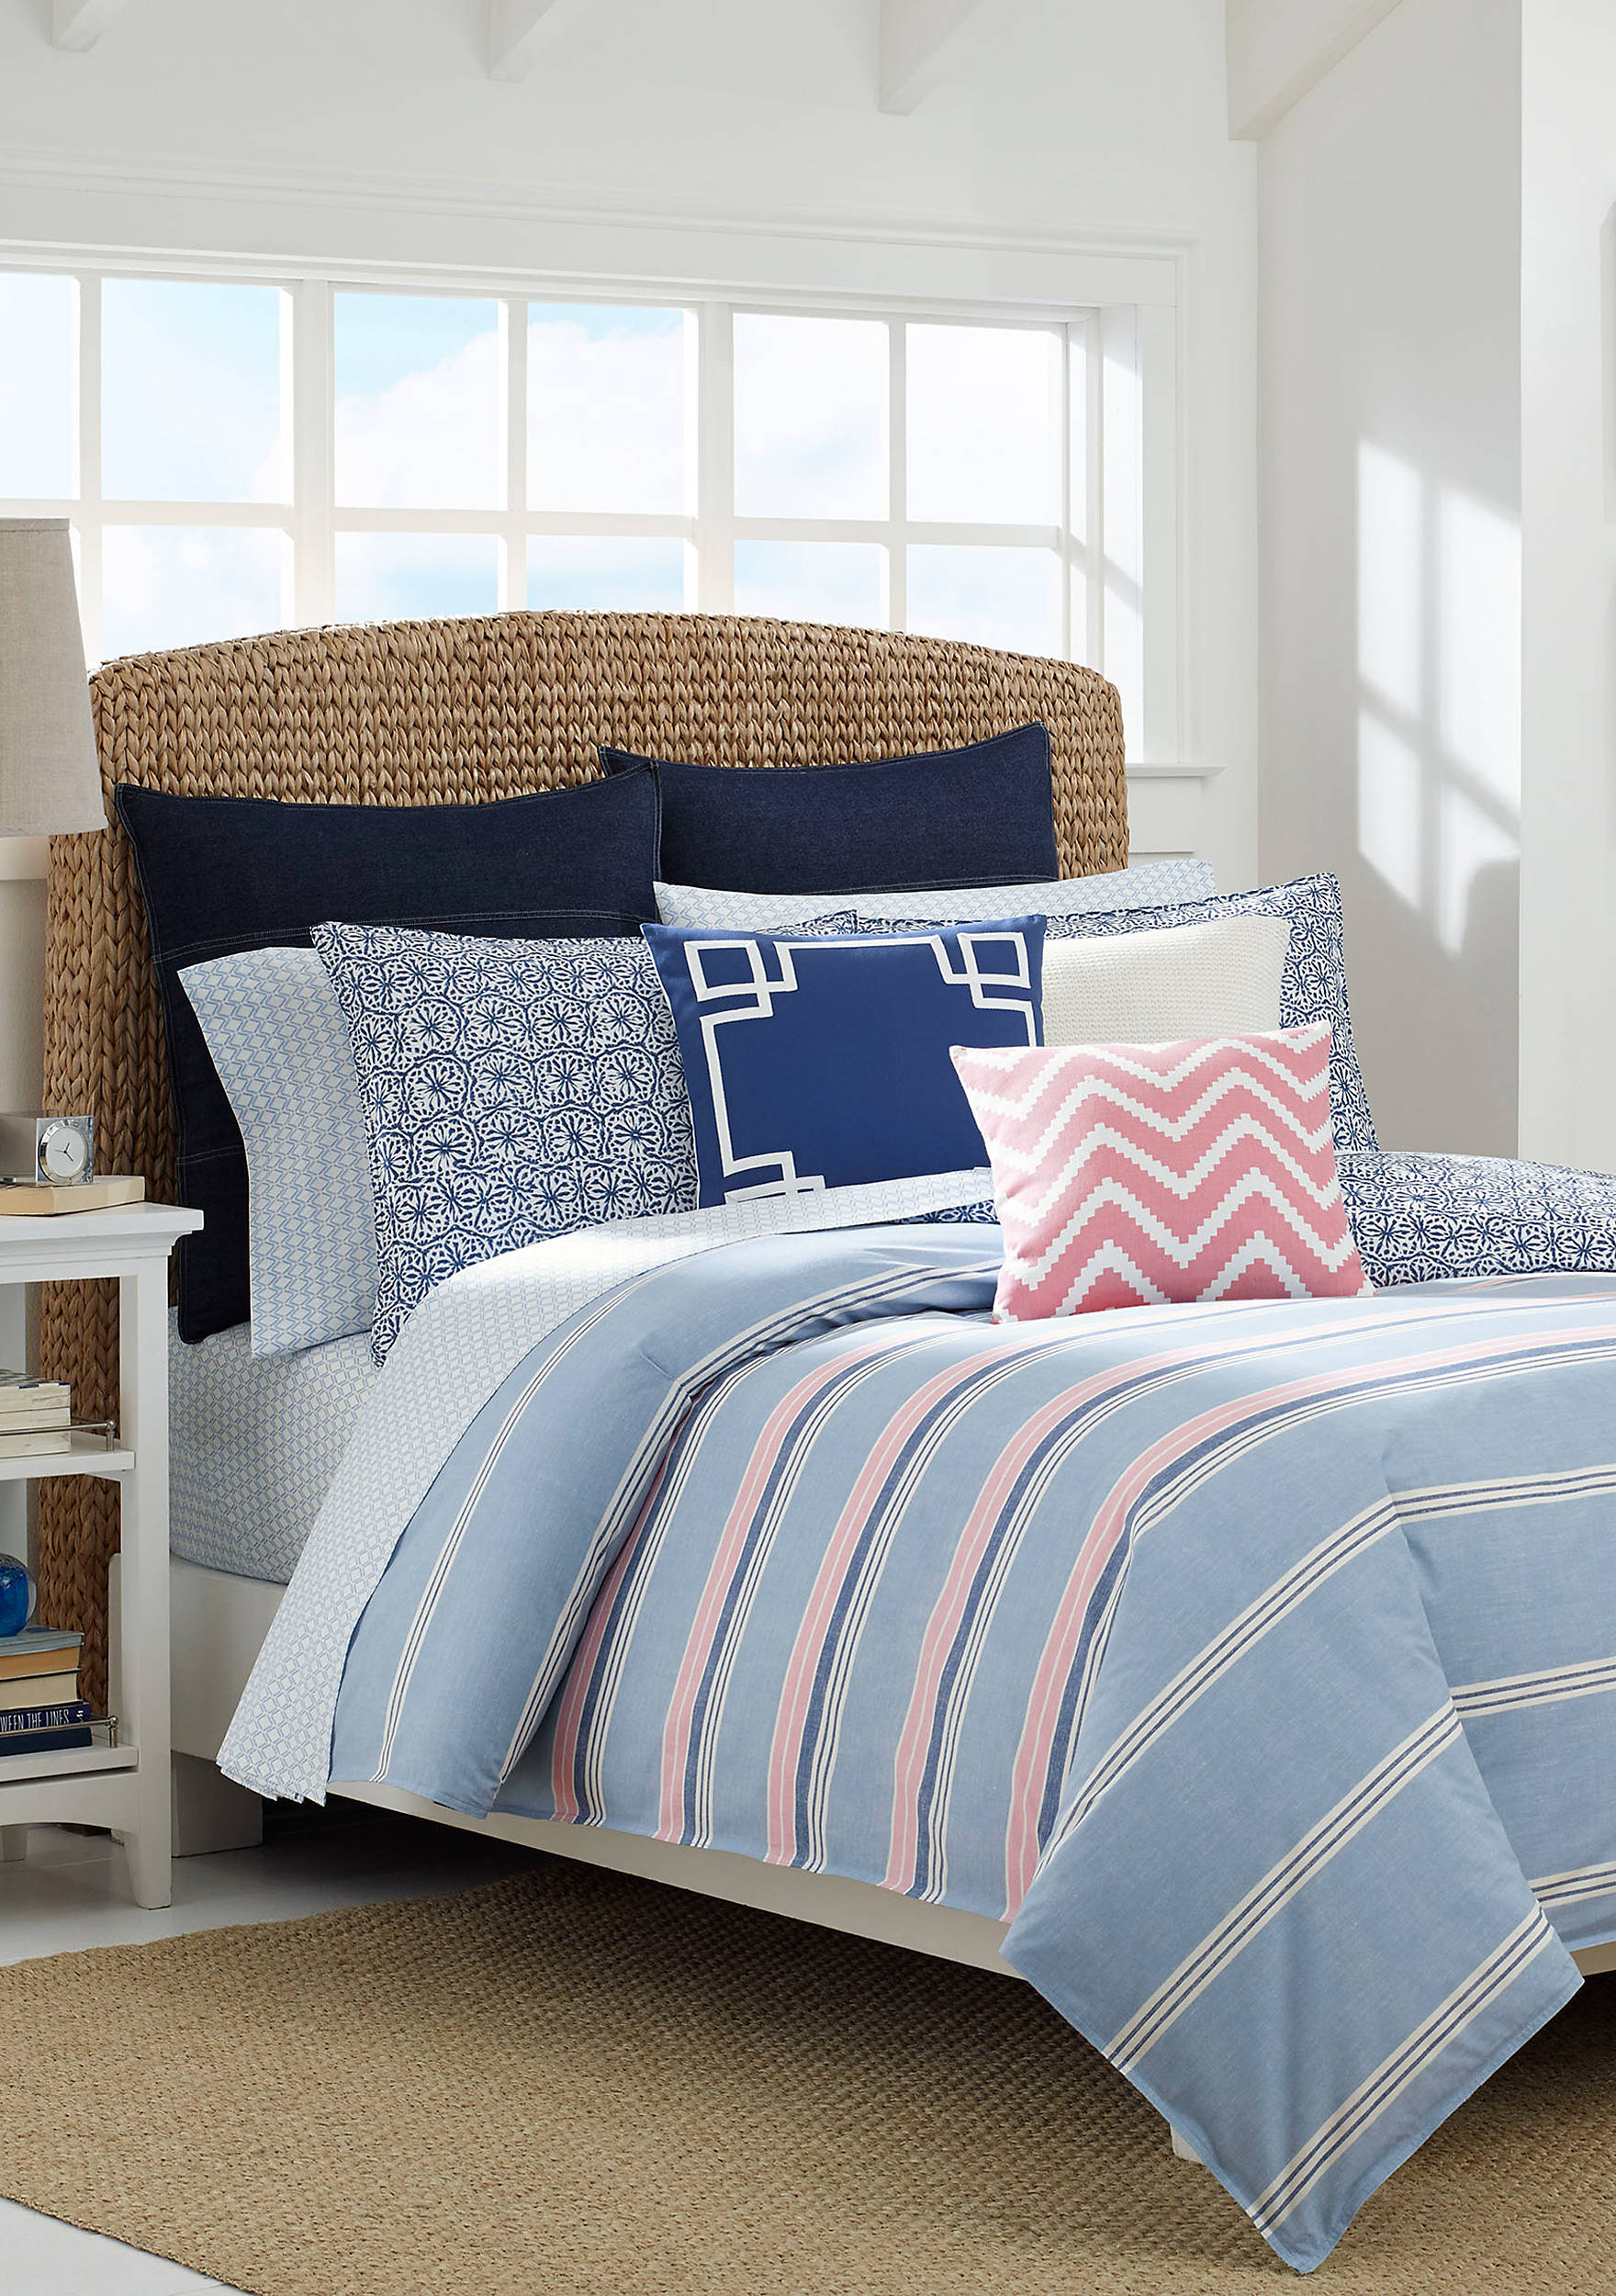 bedding comforters full sets comfort nautica amazon pink rc horrible size wonderful queen a comforter also king bag for gorgeous navy mens cheap blue